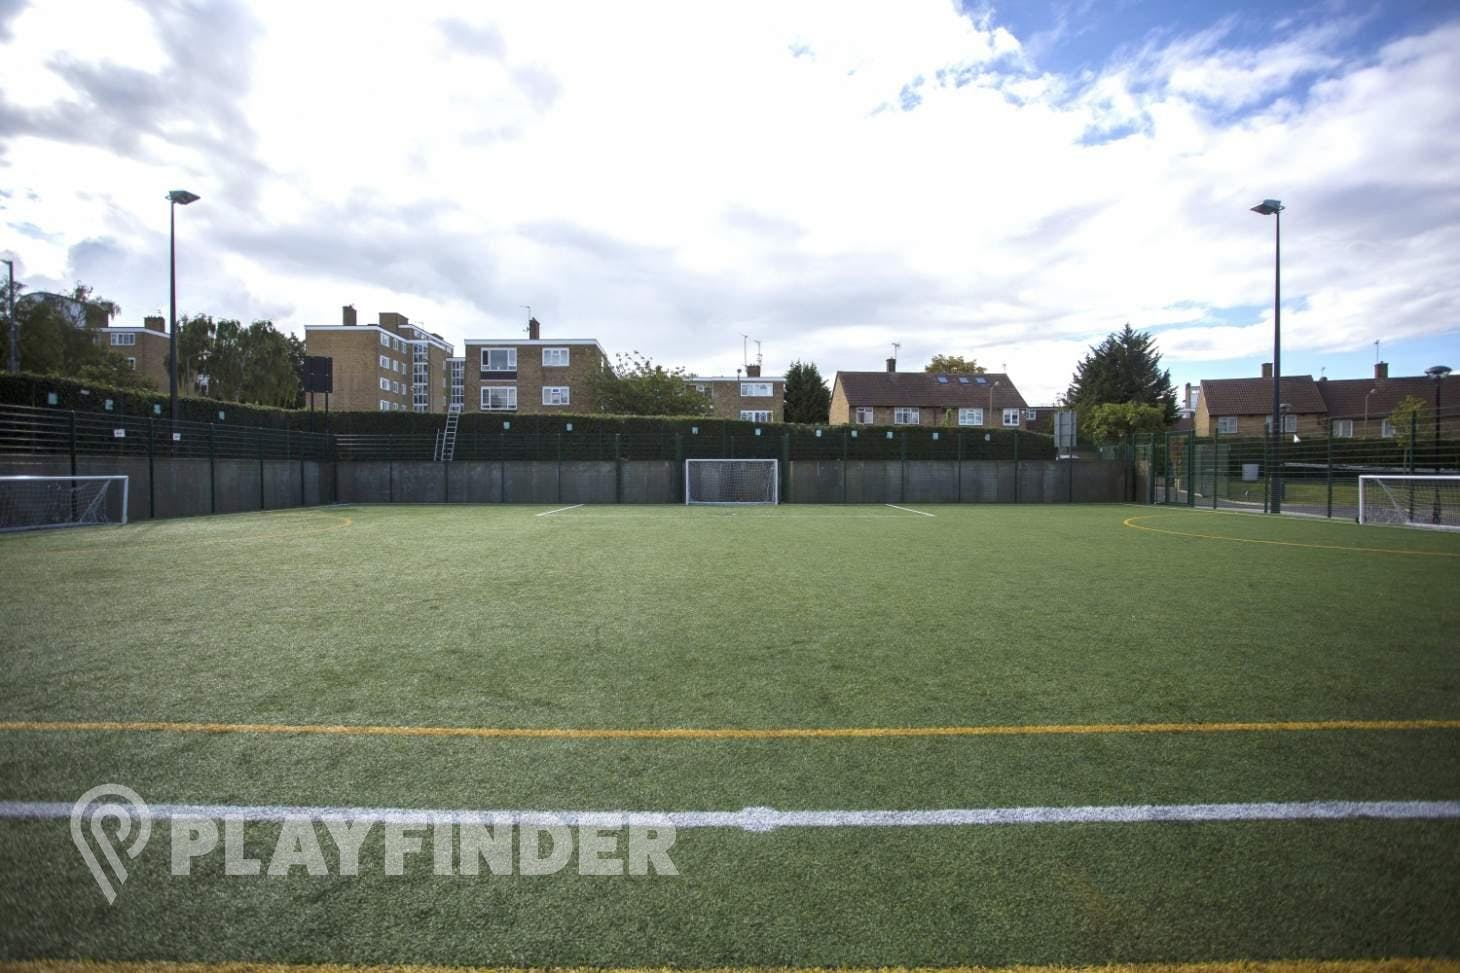 Ark Putney Academy 7 a side | 3G Astroturf football pitch